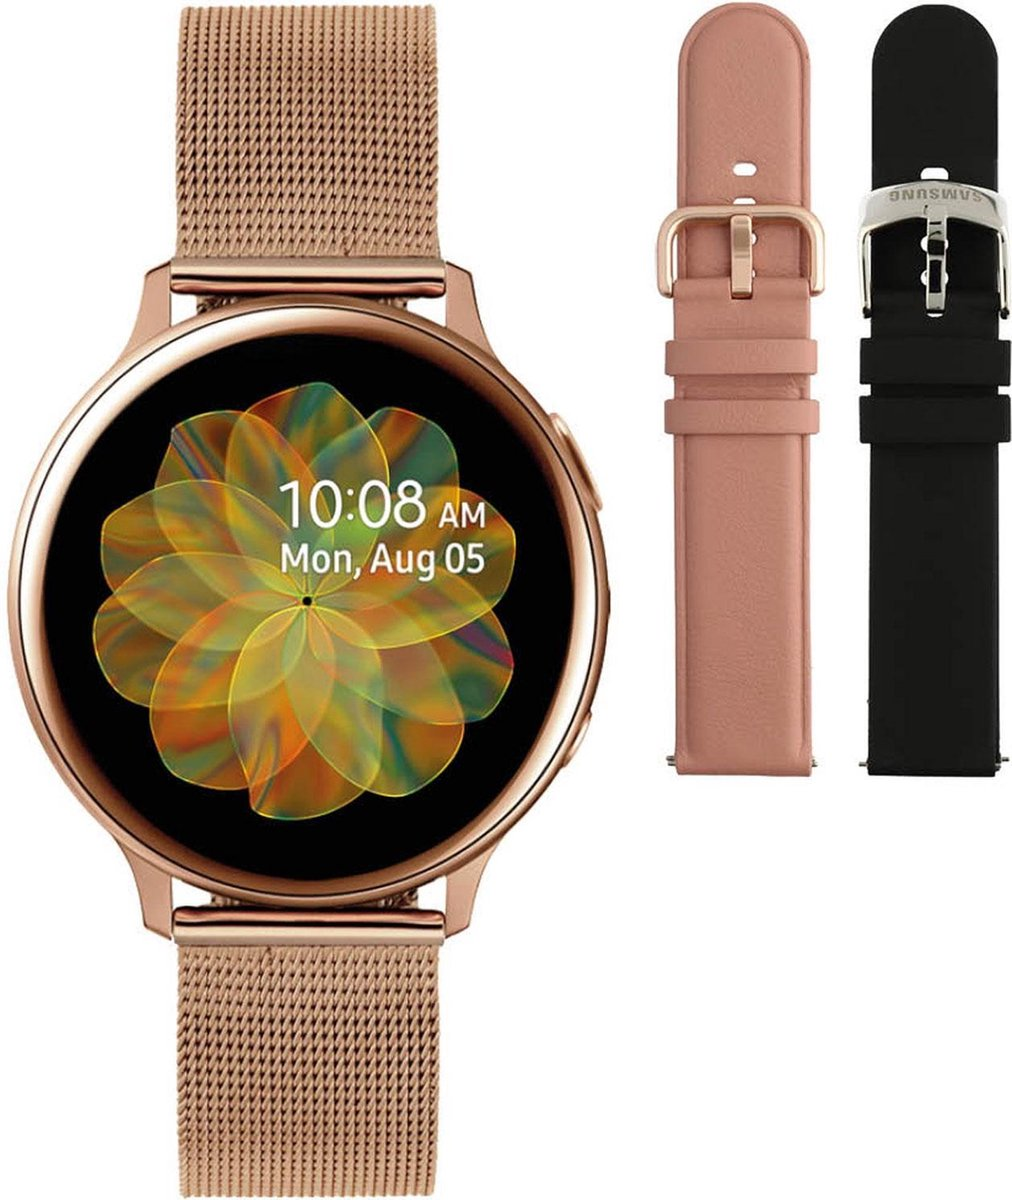 Samsung Active2 smartwatch SA.R830RM- Staal - Milanese band - Rosékleurig - Ø 40 mm - Special edition kopen